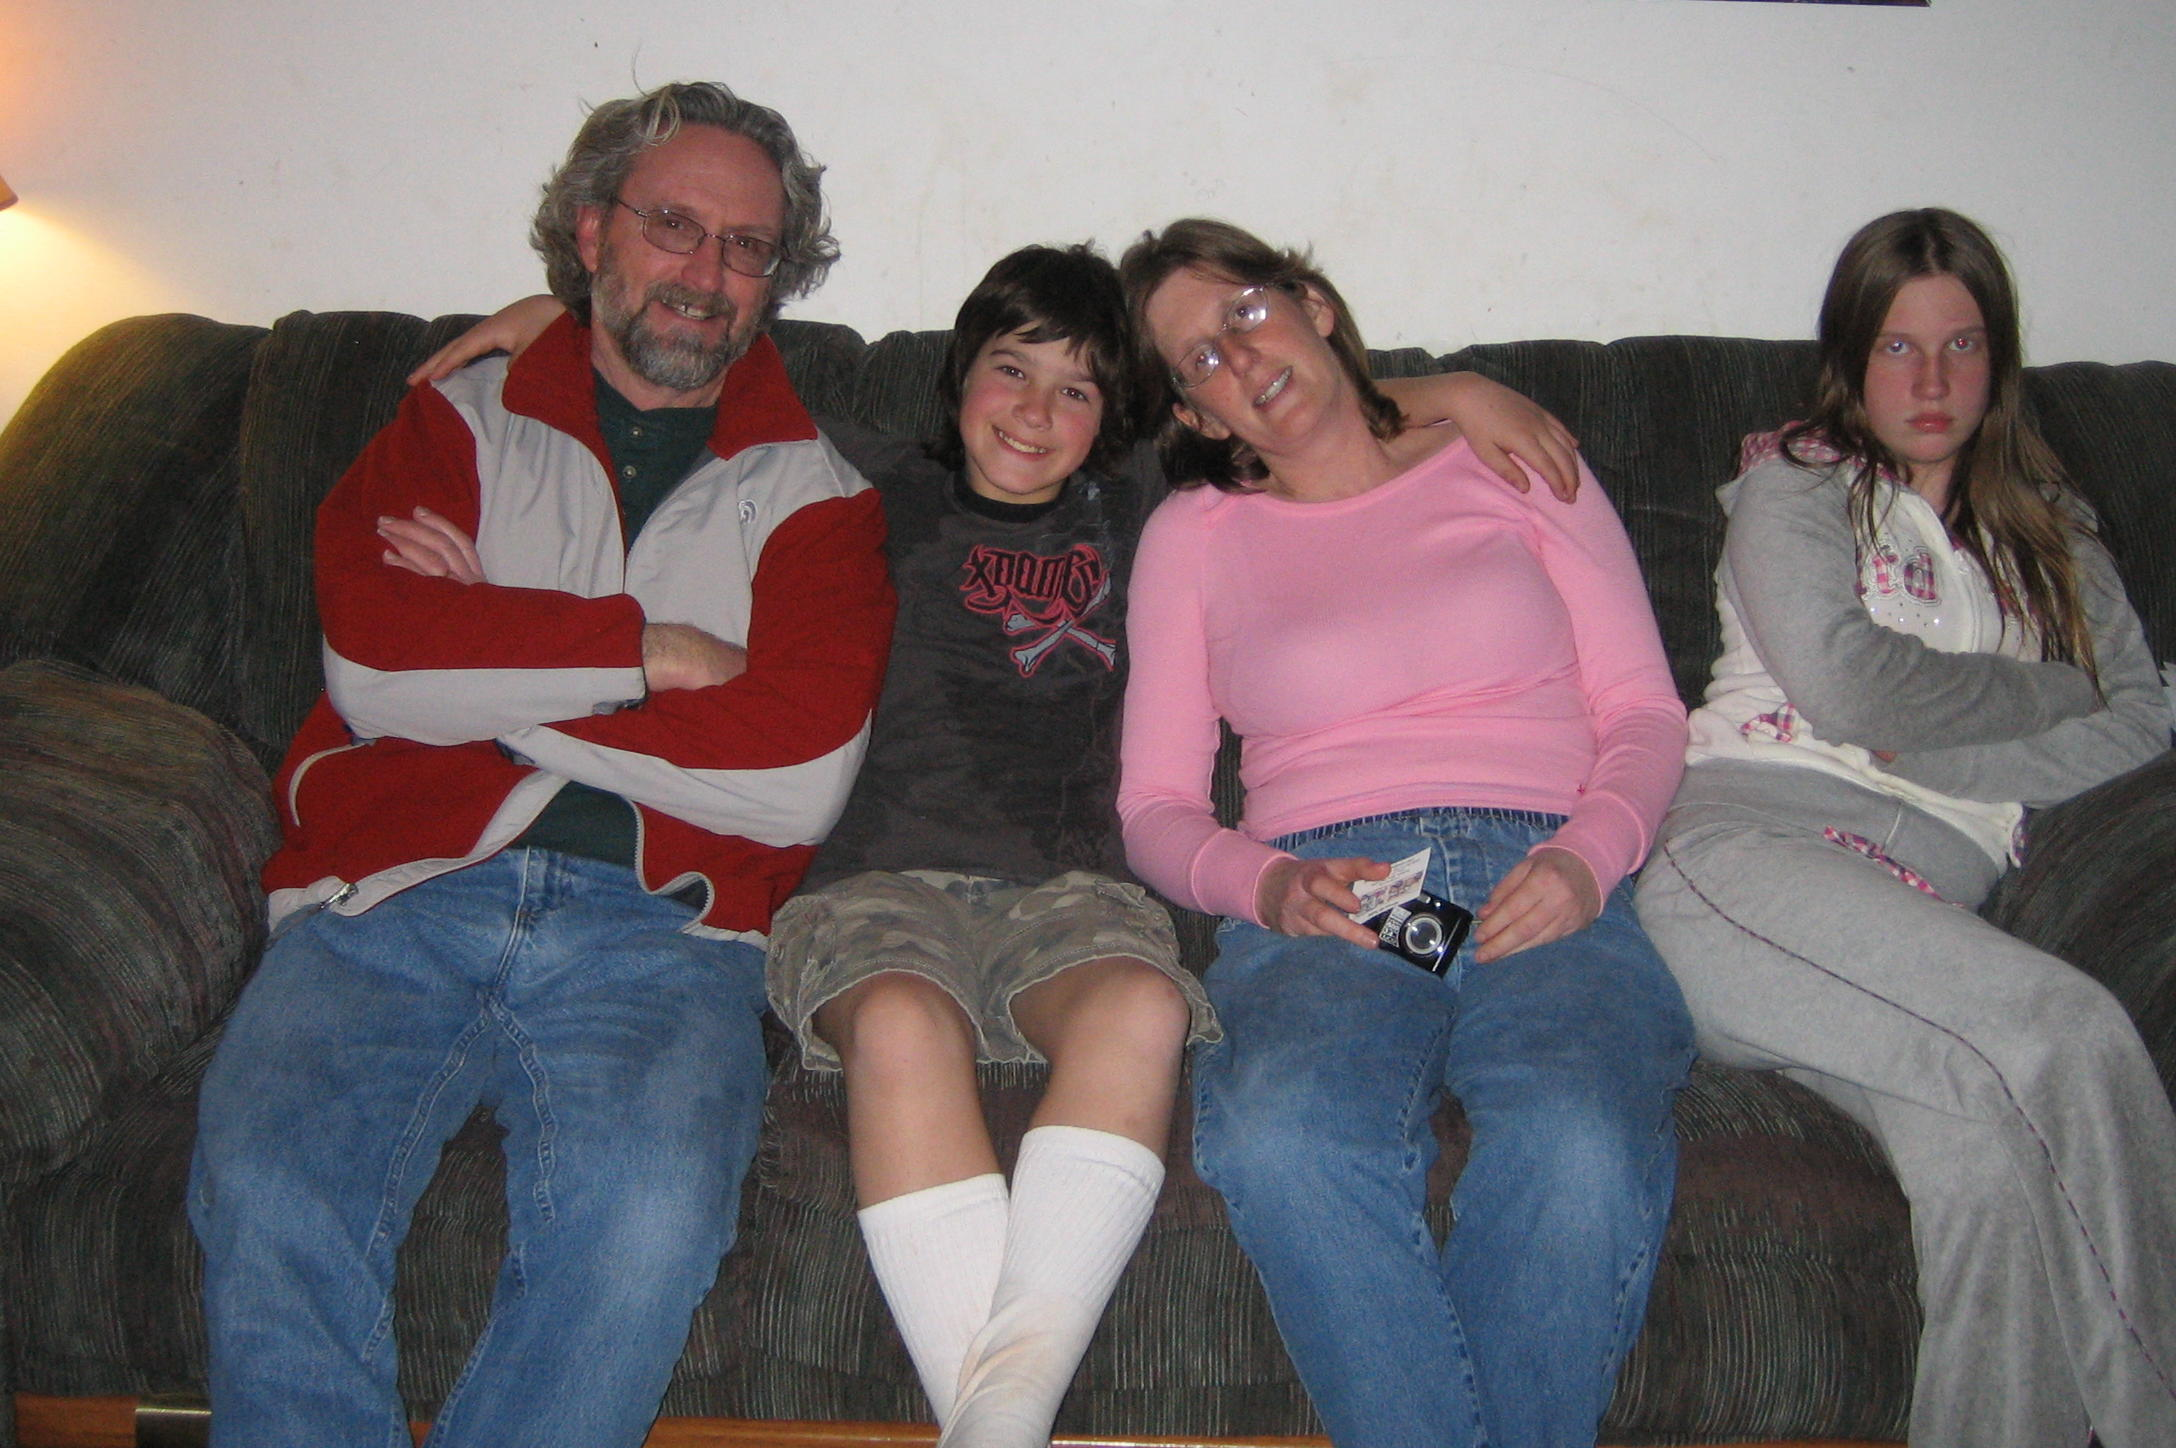 Cousin Connie and her family